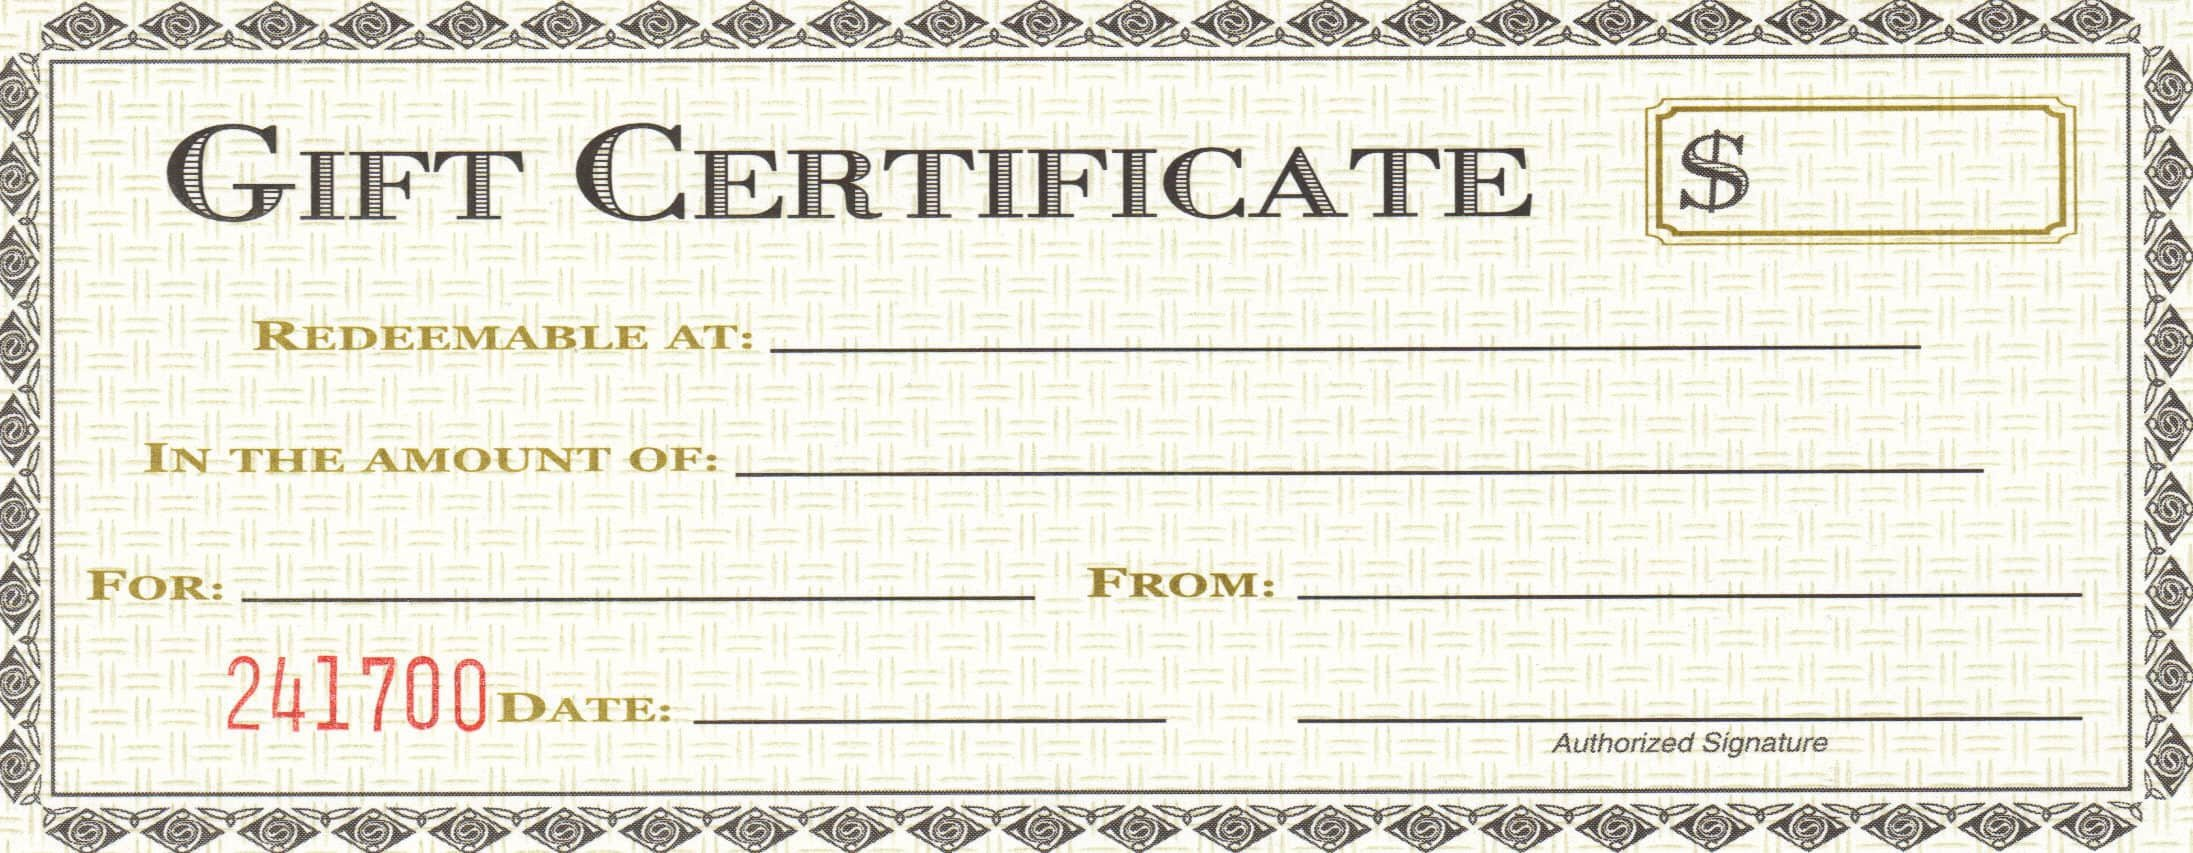 Gift Certificate Template Word 18 Gift Certificate Templates Excel Pdf formats